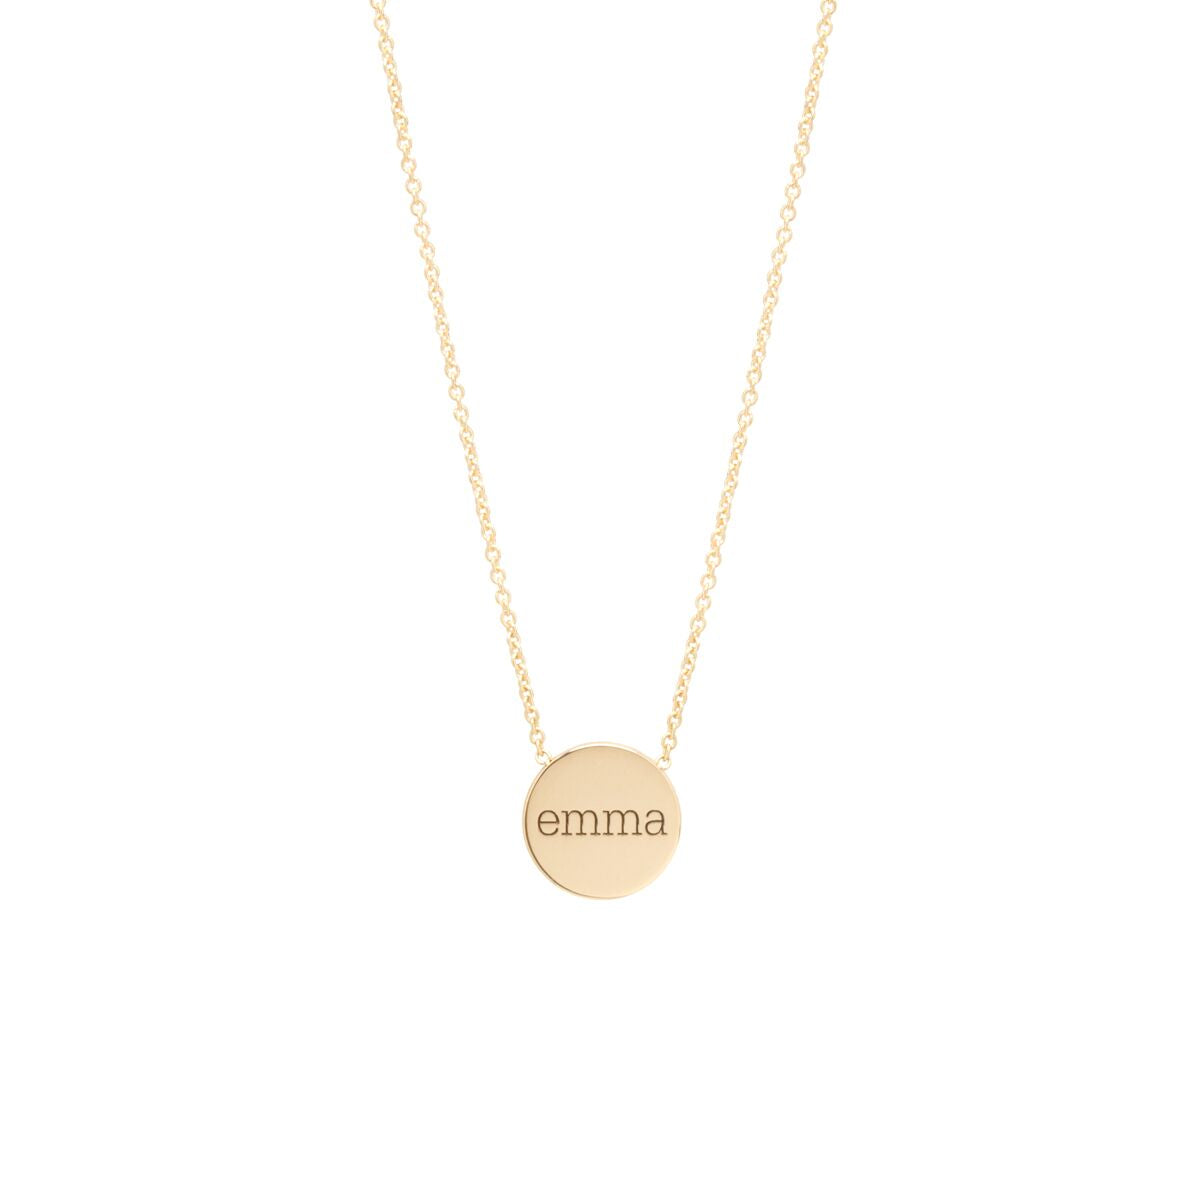 Personalized gold disc necklace stephanie gottlieb fine jewelry personalized gold disc necklace aloadofball Gallery